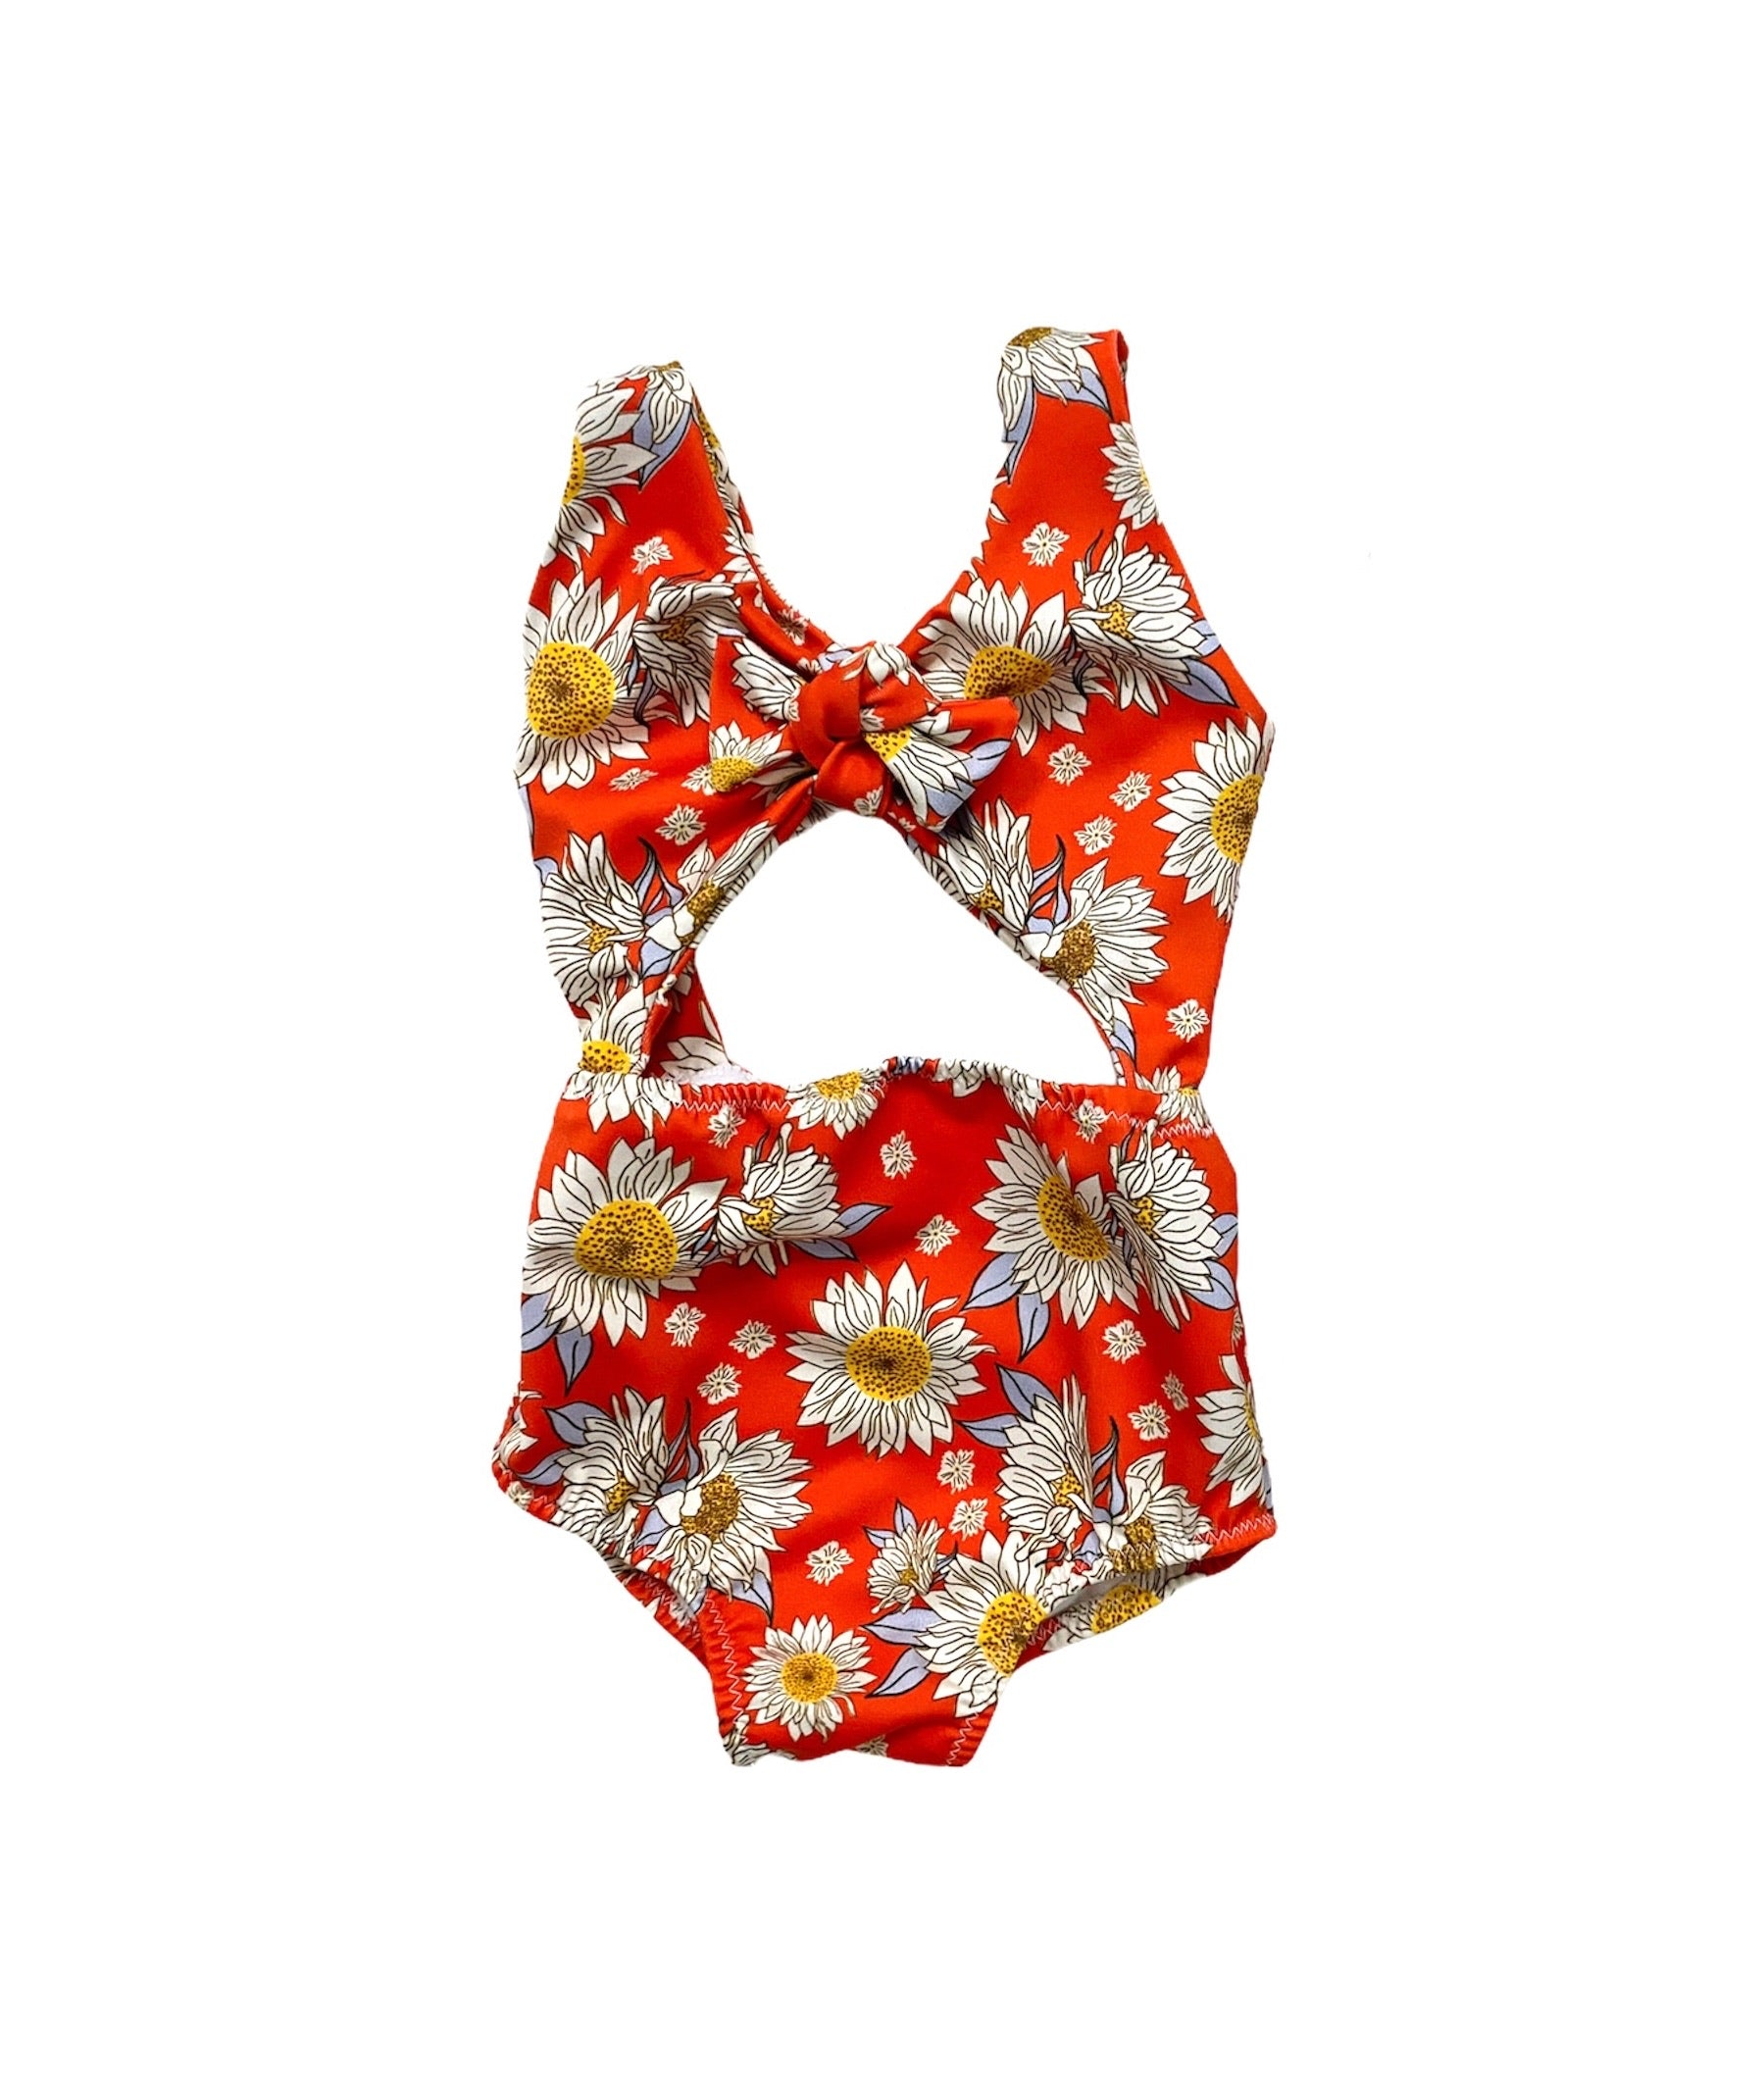 Bright Red Floral Peek-a-Boo One Piece Swimsuit